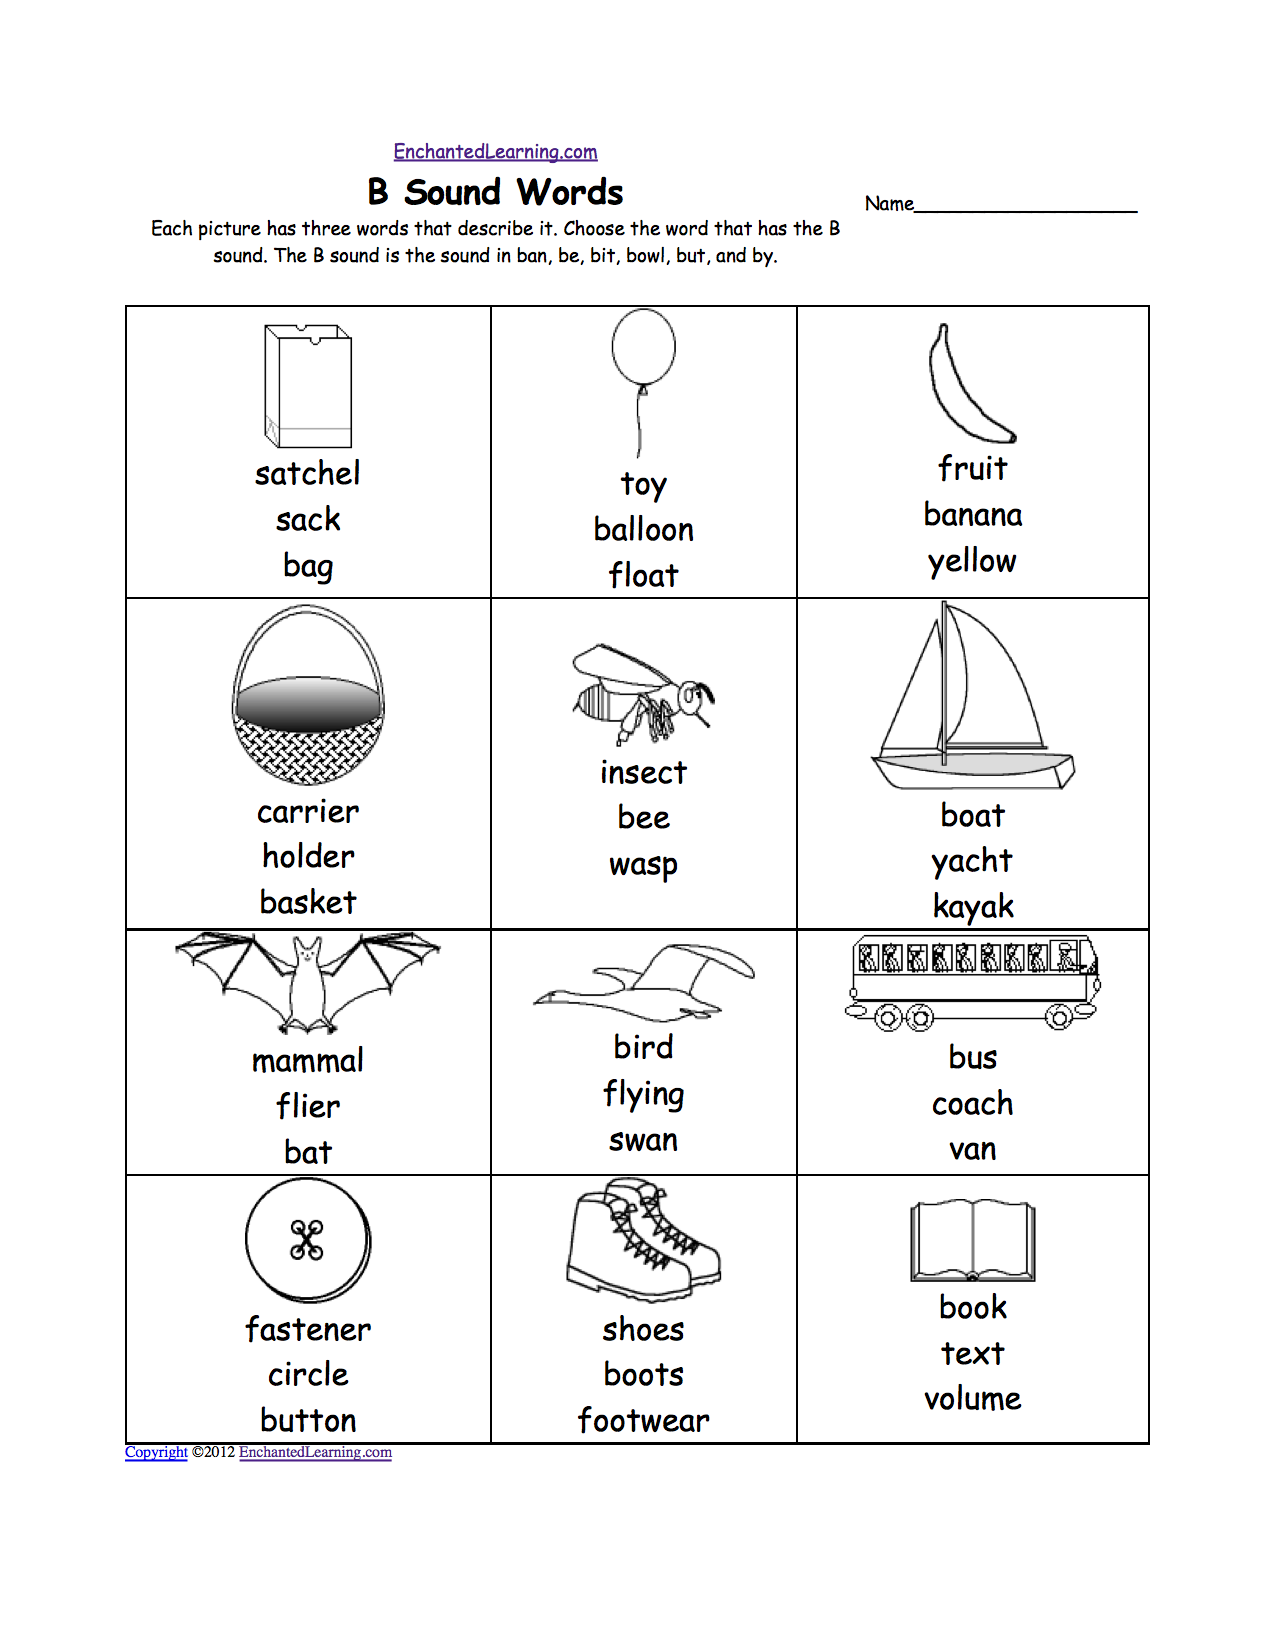 Weirdmailus  Winsome Phonics Worksheets Multiple Choice Worksheets To Print  With Great Quotbquot Sound Phonics Worksheet Multiple Choice Each Picture Has Three Words That Describe It Choose The Word That Has A Quotbquot Sound The Quotbquot Sound Is The Sound  With Astonishing Number Sequence Worksheet Also Printable Math Worksheets For Rd Graders In Addition Travel Expense Worksheet And Create Division Worksheets As Well As Ay And Ai Worksheets Additionally Best Math Worksheets From Enchantedlearningcom With Weirdmailus  Great Phonics Worksheets Multiple Choice Worksheets To Print  With Astonishing Quotbquot Sound Phonics Worksheet Multiple Choice Each Picture Has Three Words That Describe It Choose The Word That Has A Quotbquot Sound The Quotbquot Sound Is The Sound  And Winsome Number Sequence Worksheet Also Printable Math Worksheets For Rd Graders In Addition Travel Expense Worksheet From Enchantedlearningcom